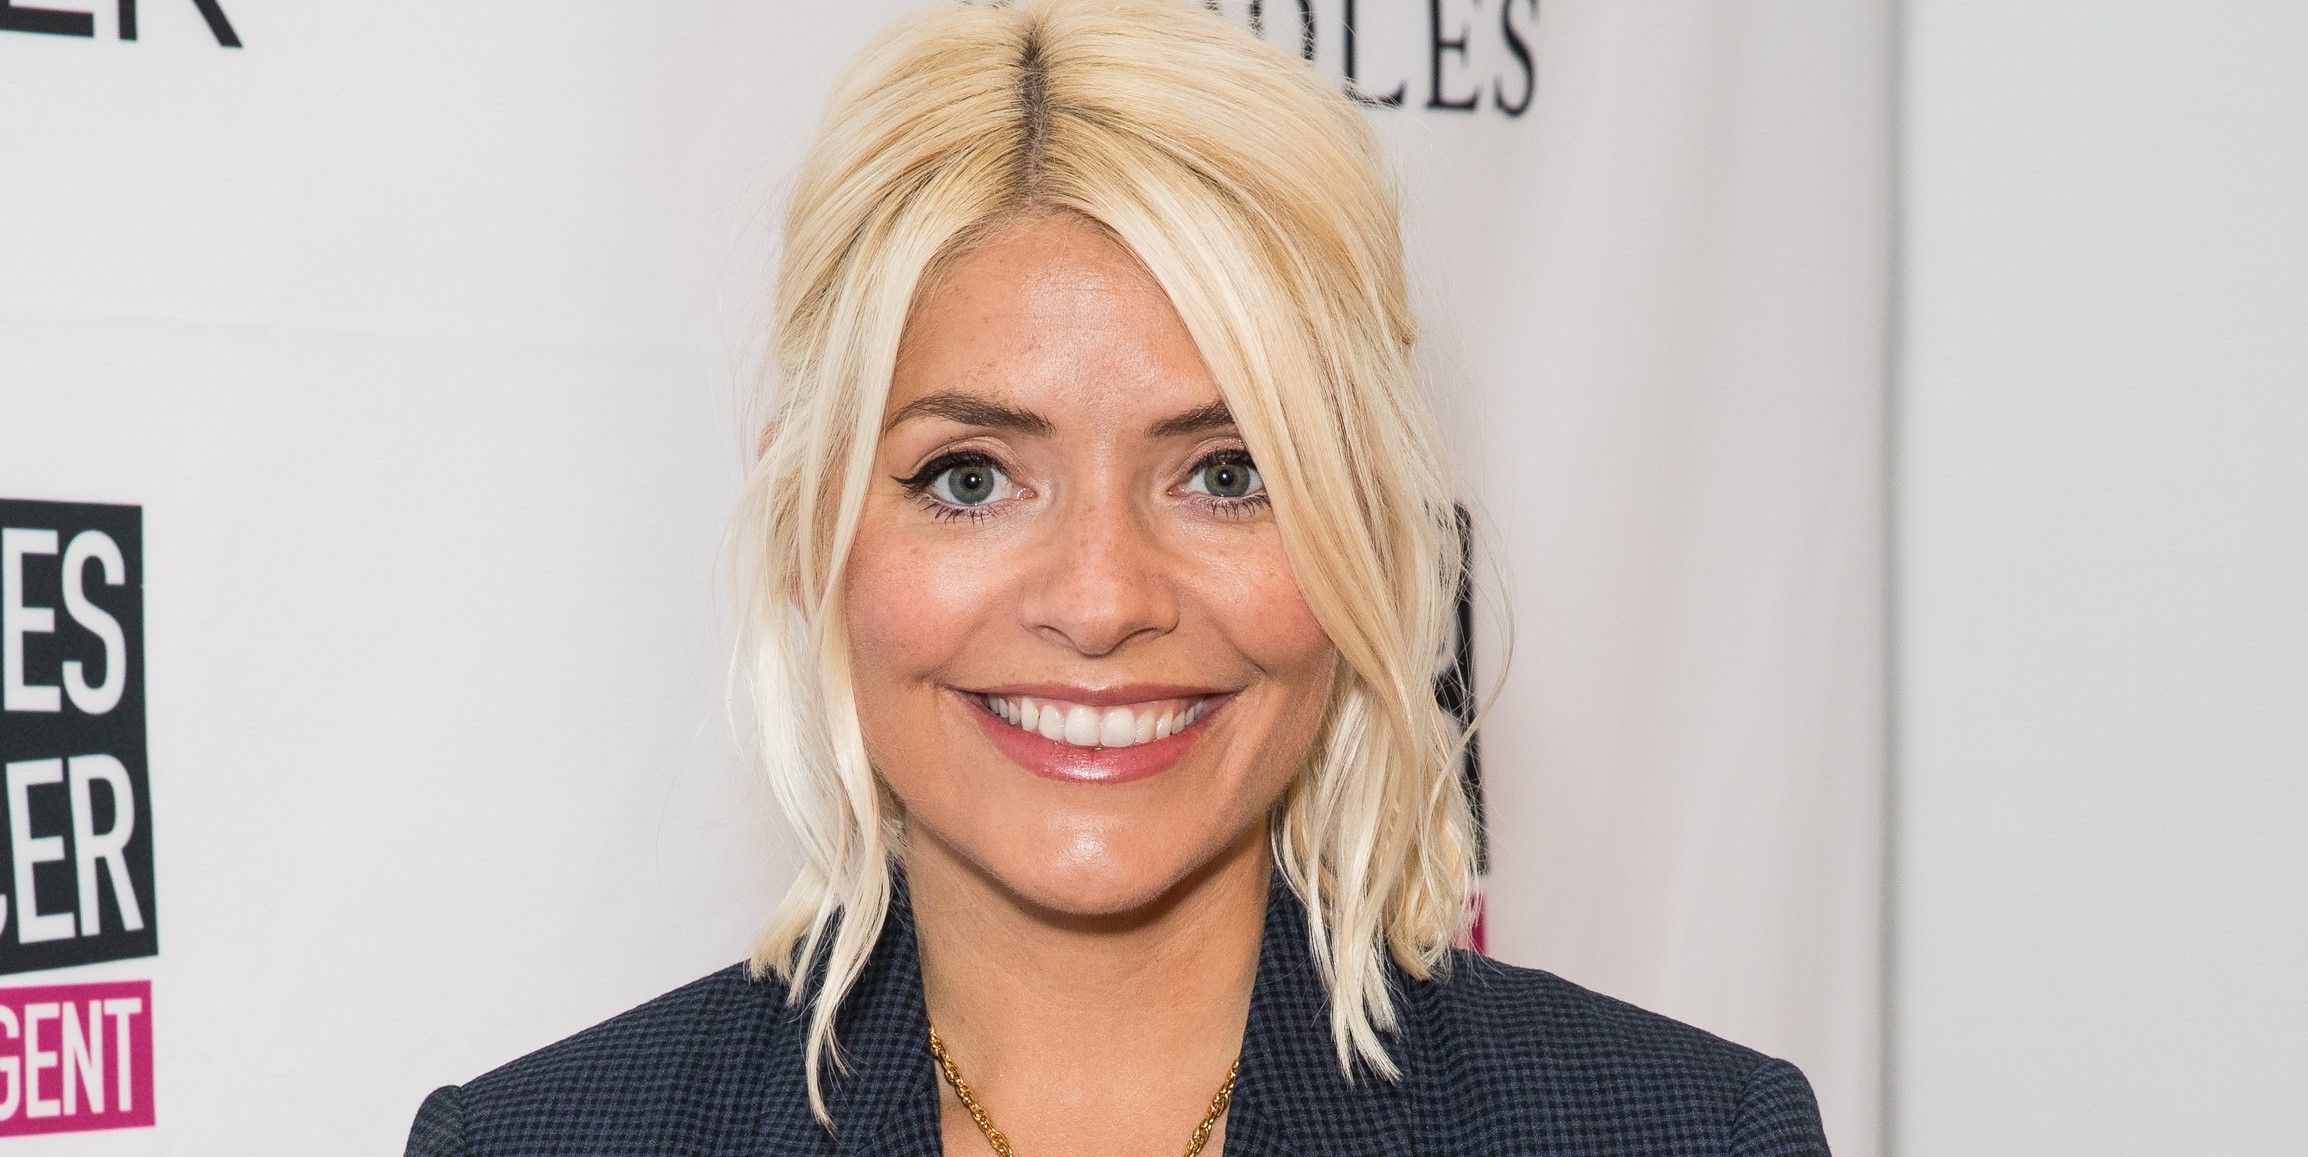 Holly Willoughby shares cute photo of son Chester to mark his fifth birthday